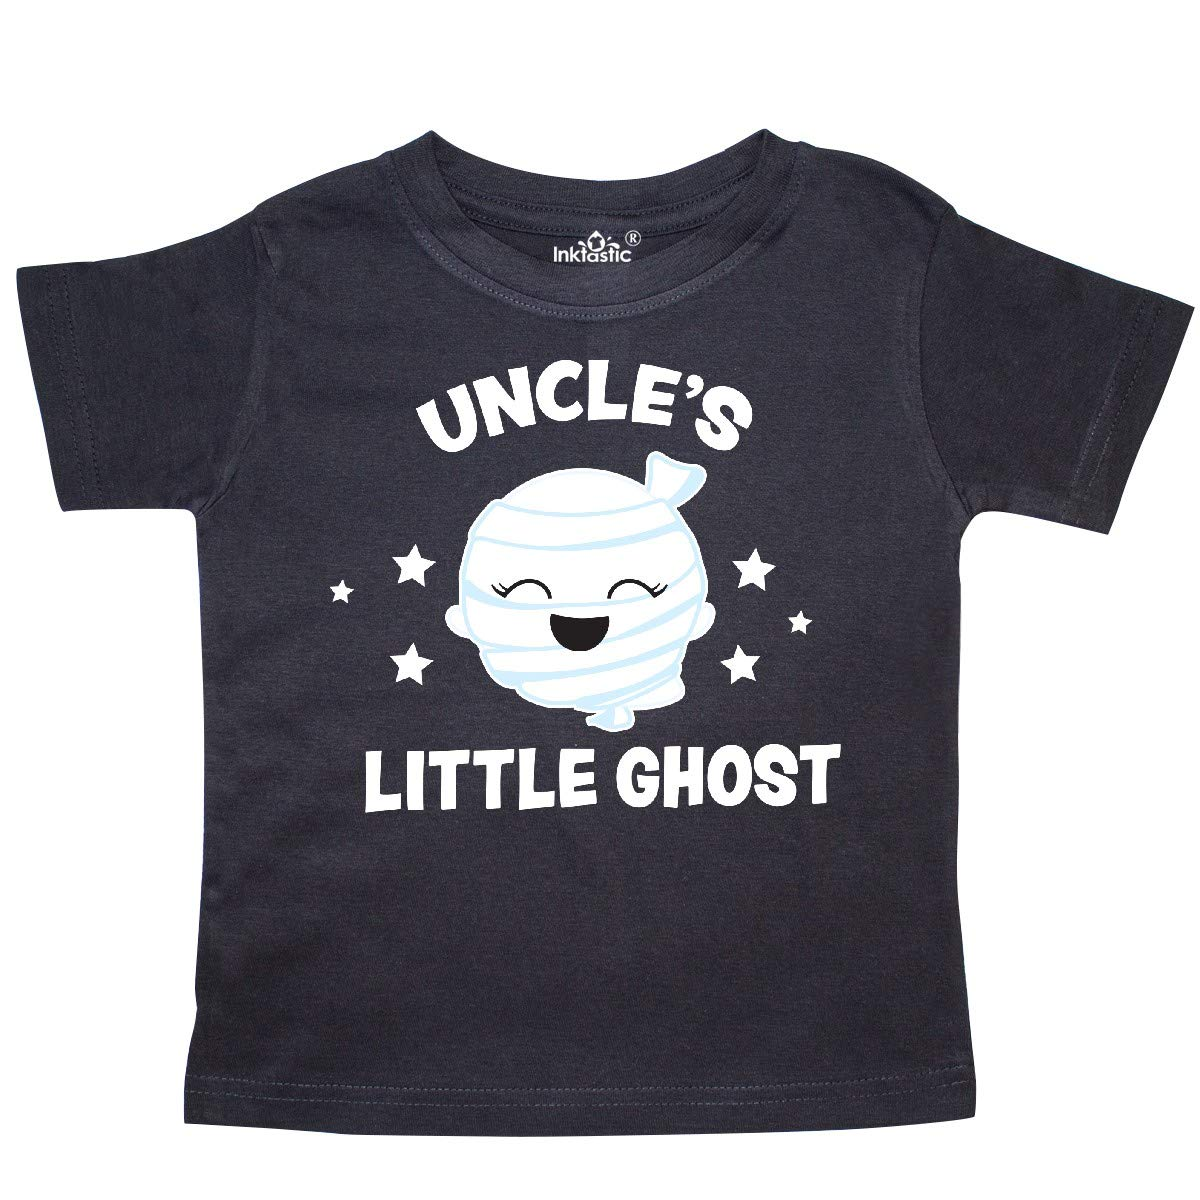 inktastic Cute Uncles Little Ghost with Stars Toddler T-Shirt